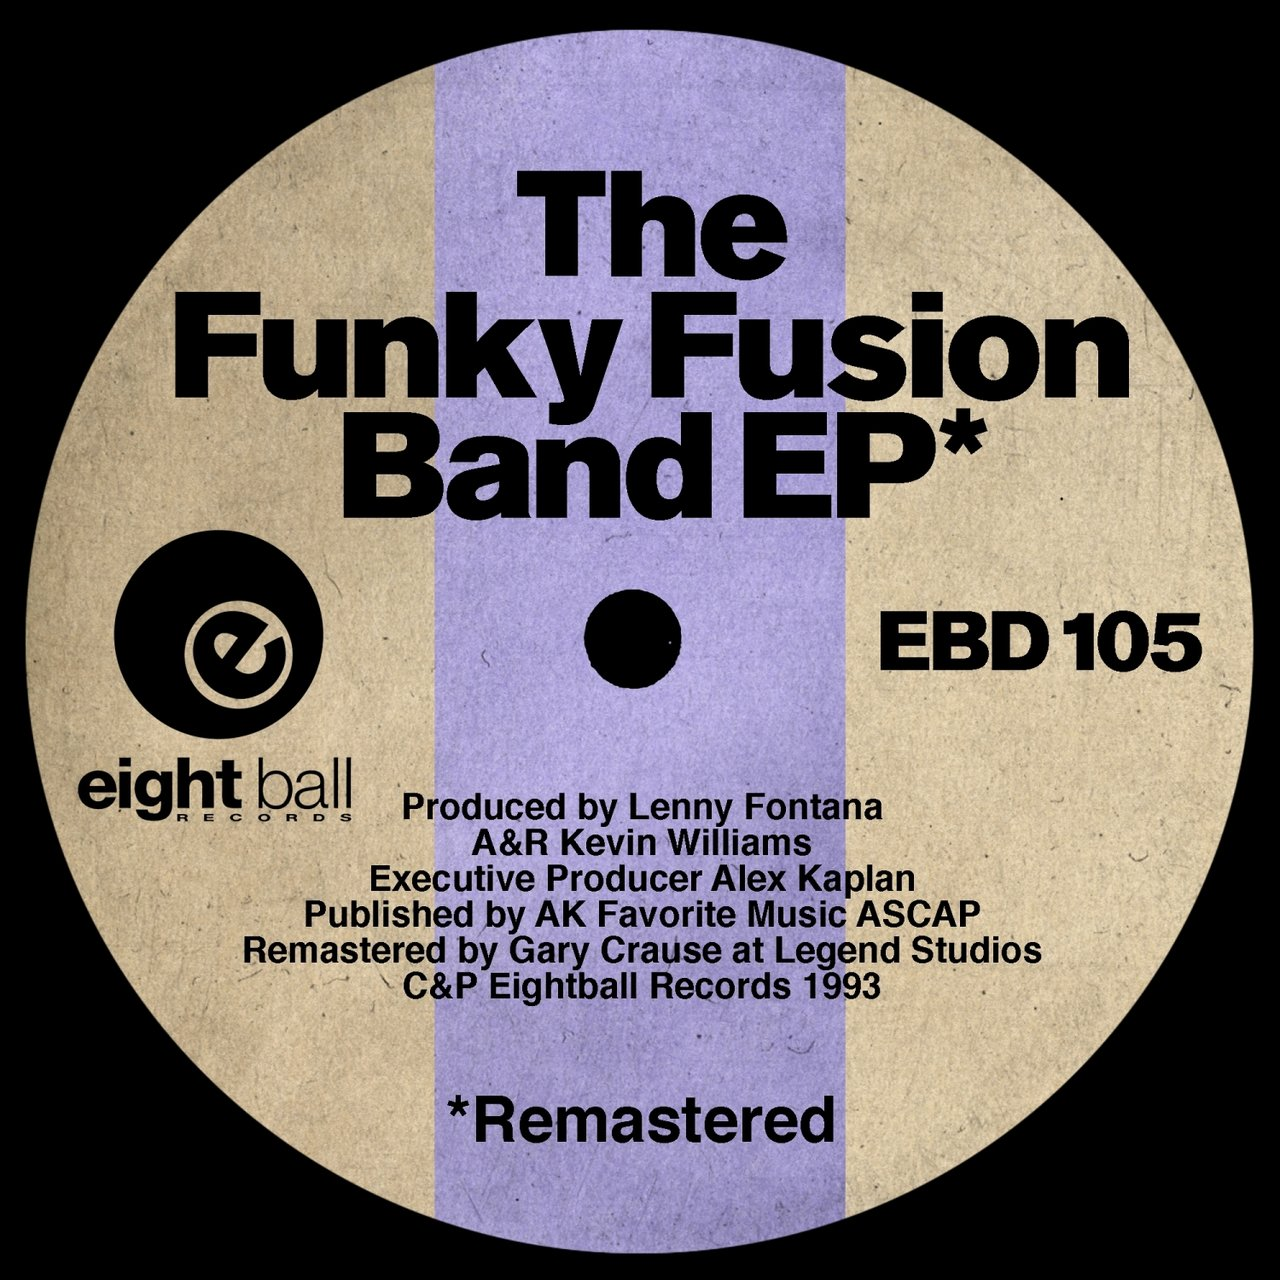 The Funky Fusion Band